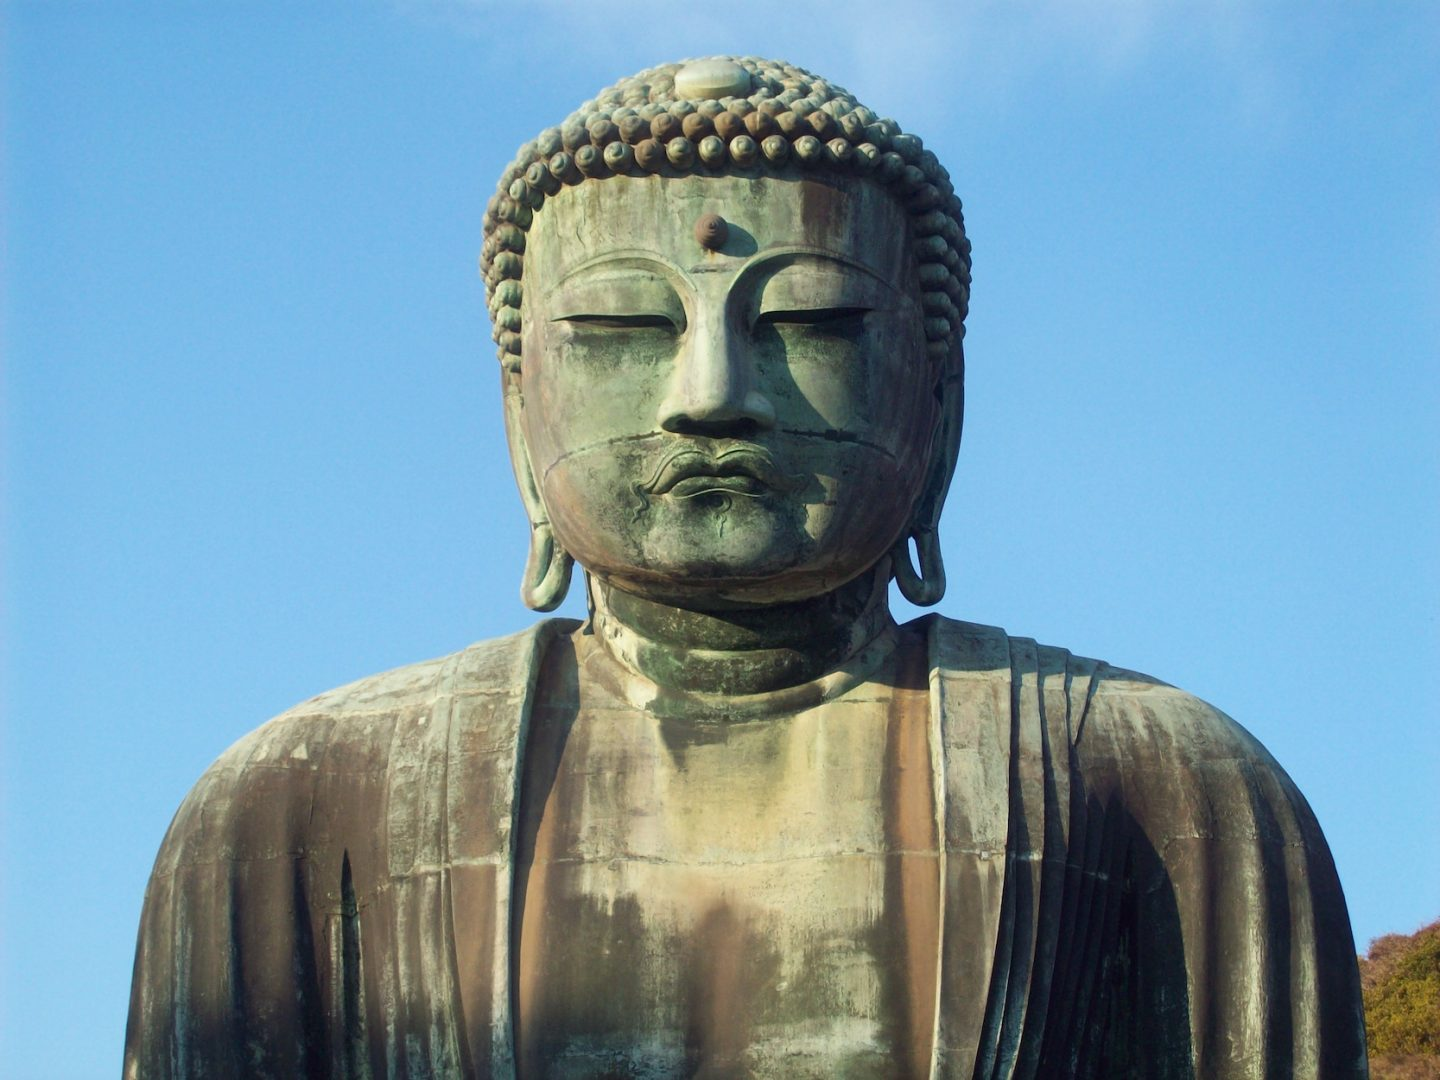 Buddha Daibutsu Kamakura Japan close up view